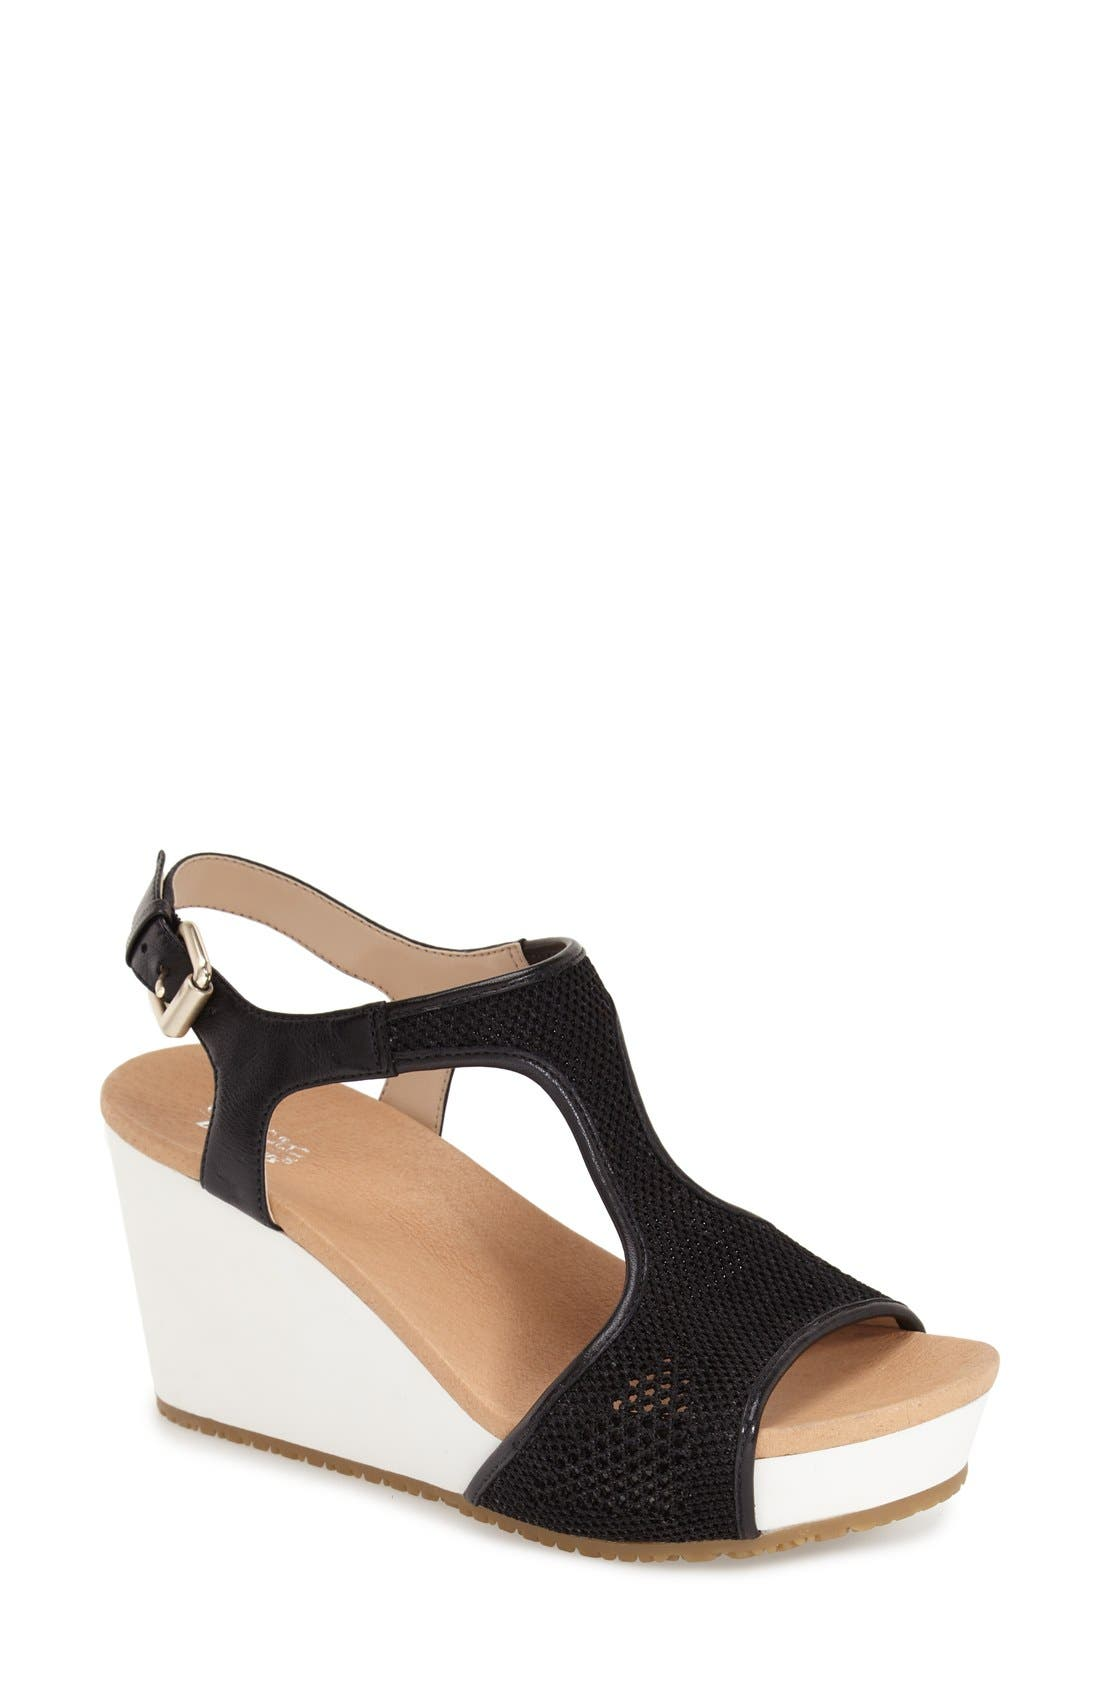 'Original Collection Wiley' Wedge Sandal,                             Main thumbnail 1, color,                             001